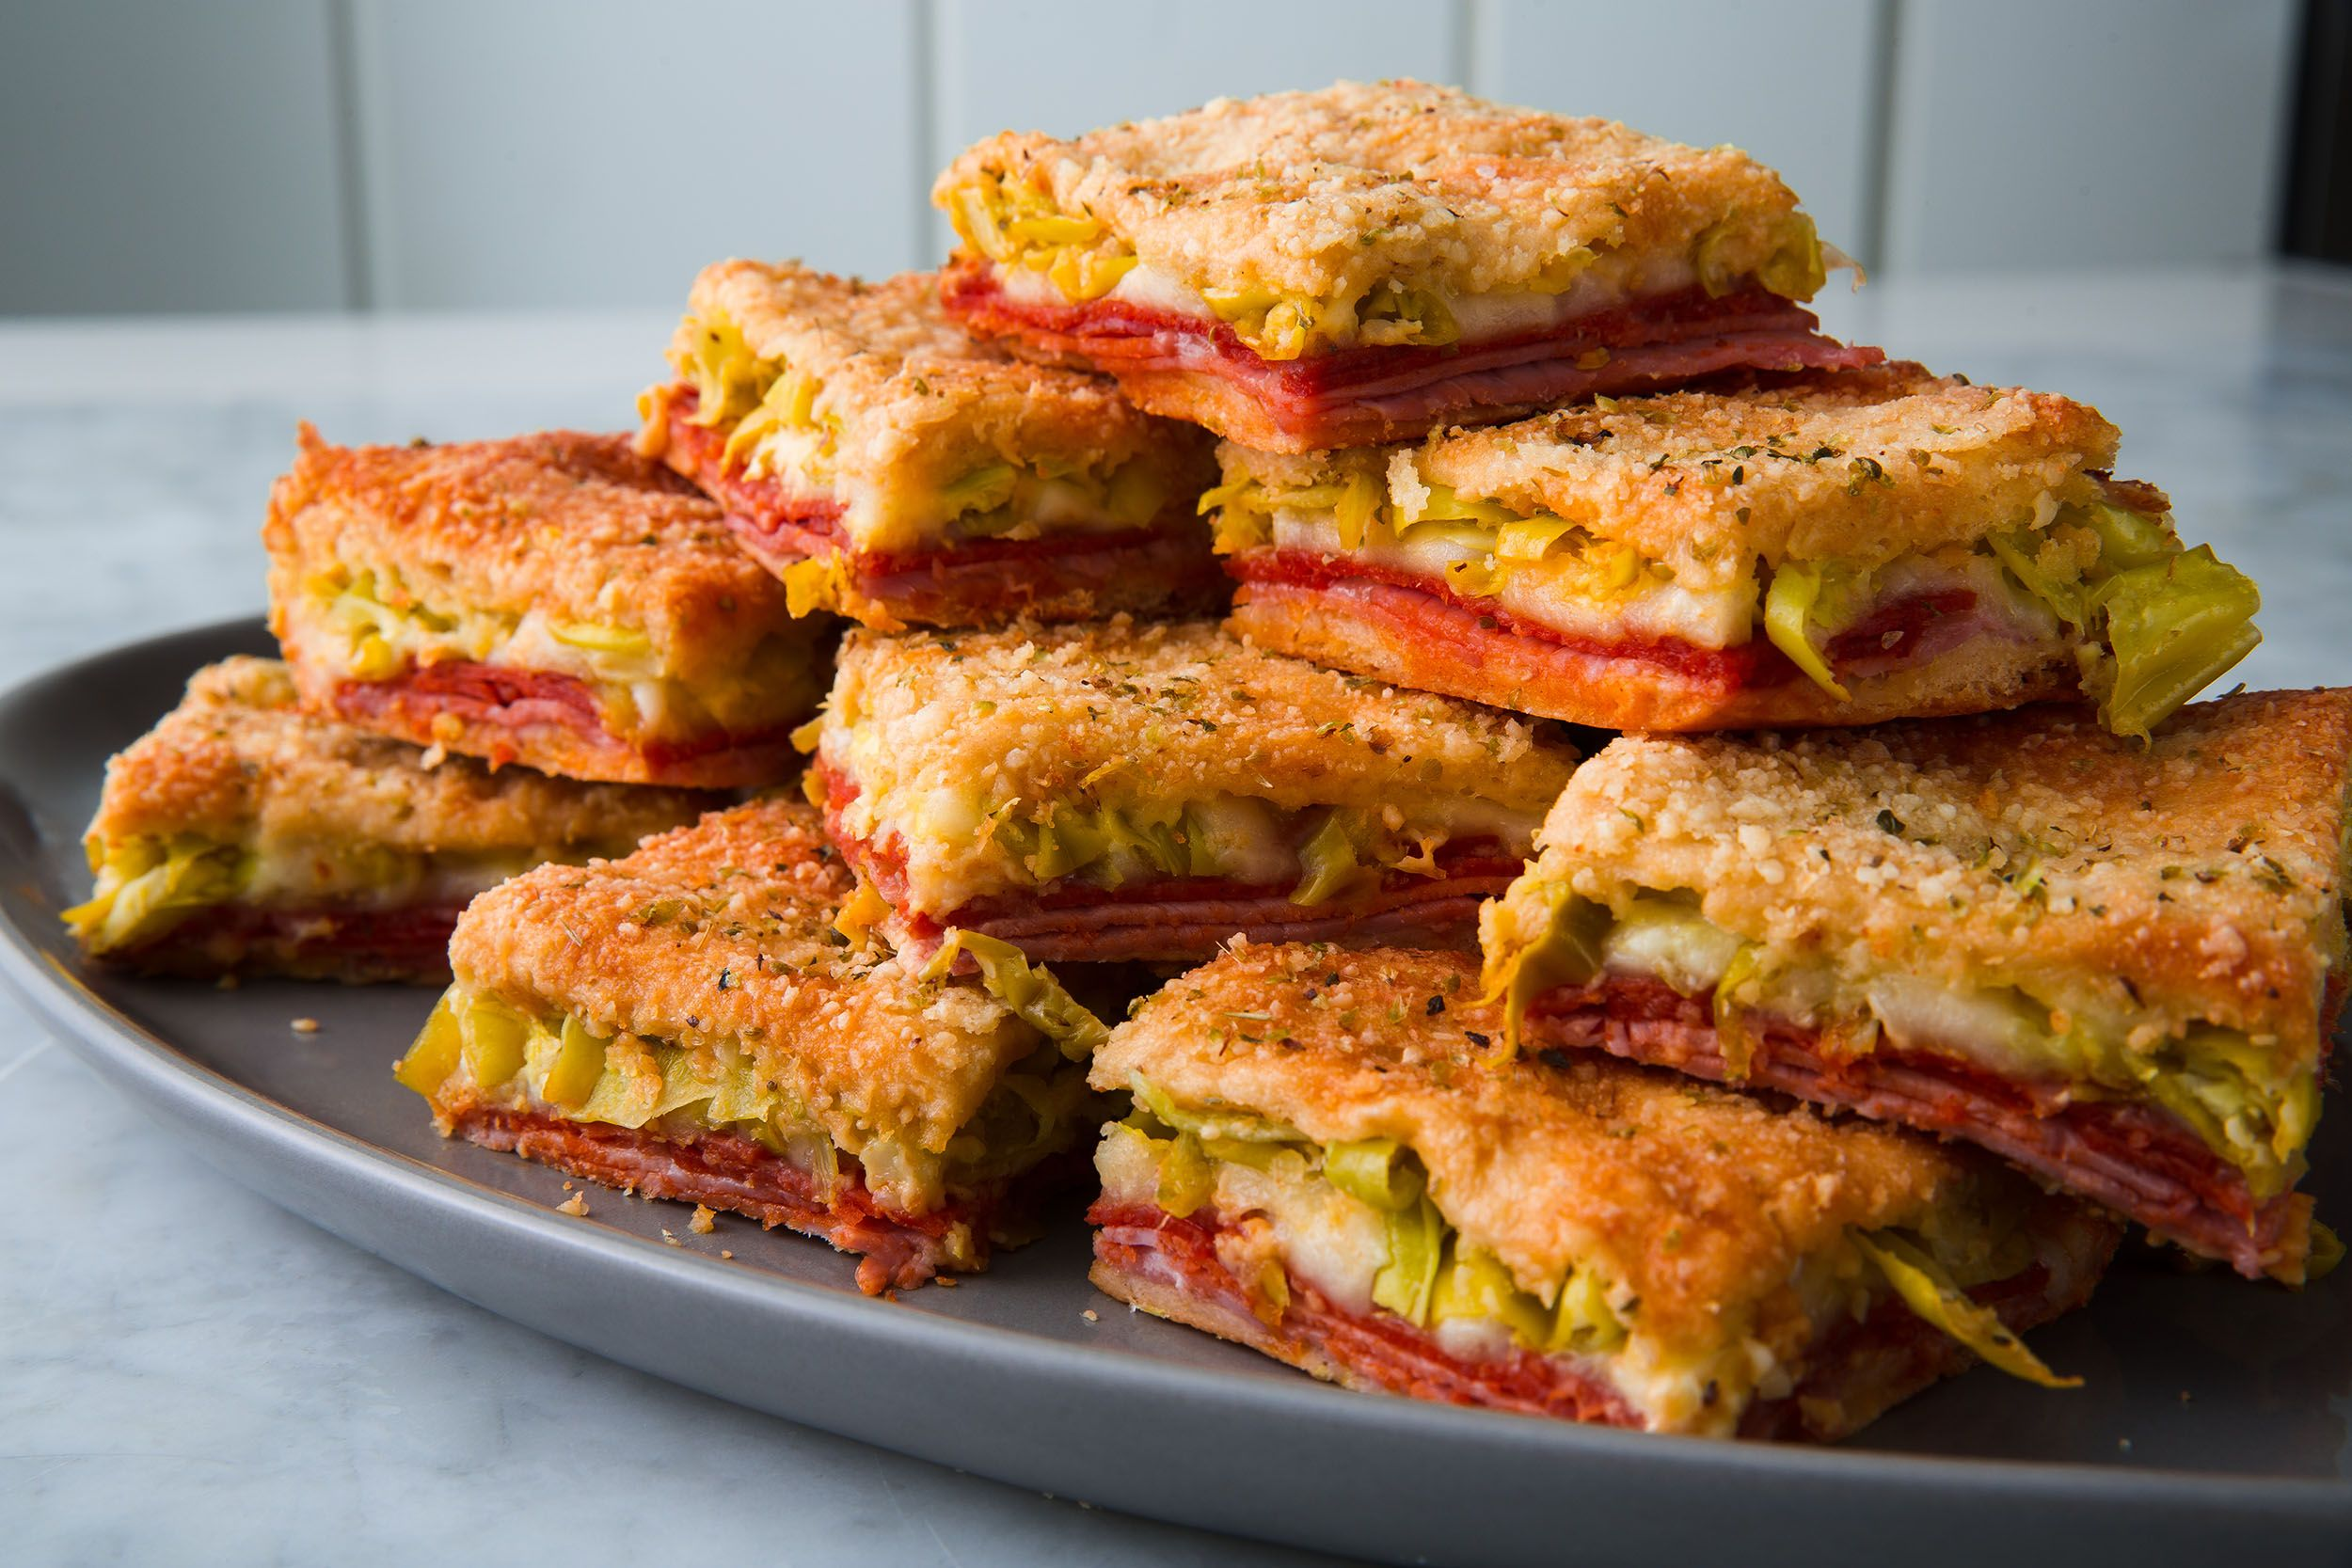 Best Antipasto Squares Recipe - How to Make Antipasto Squares